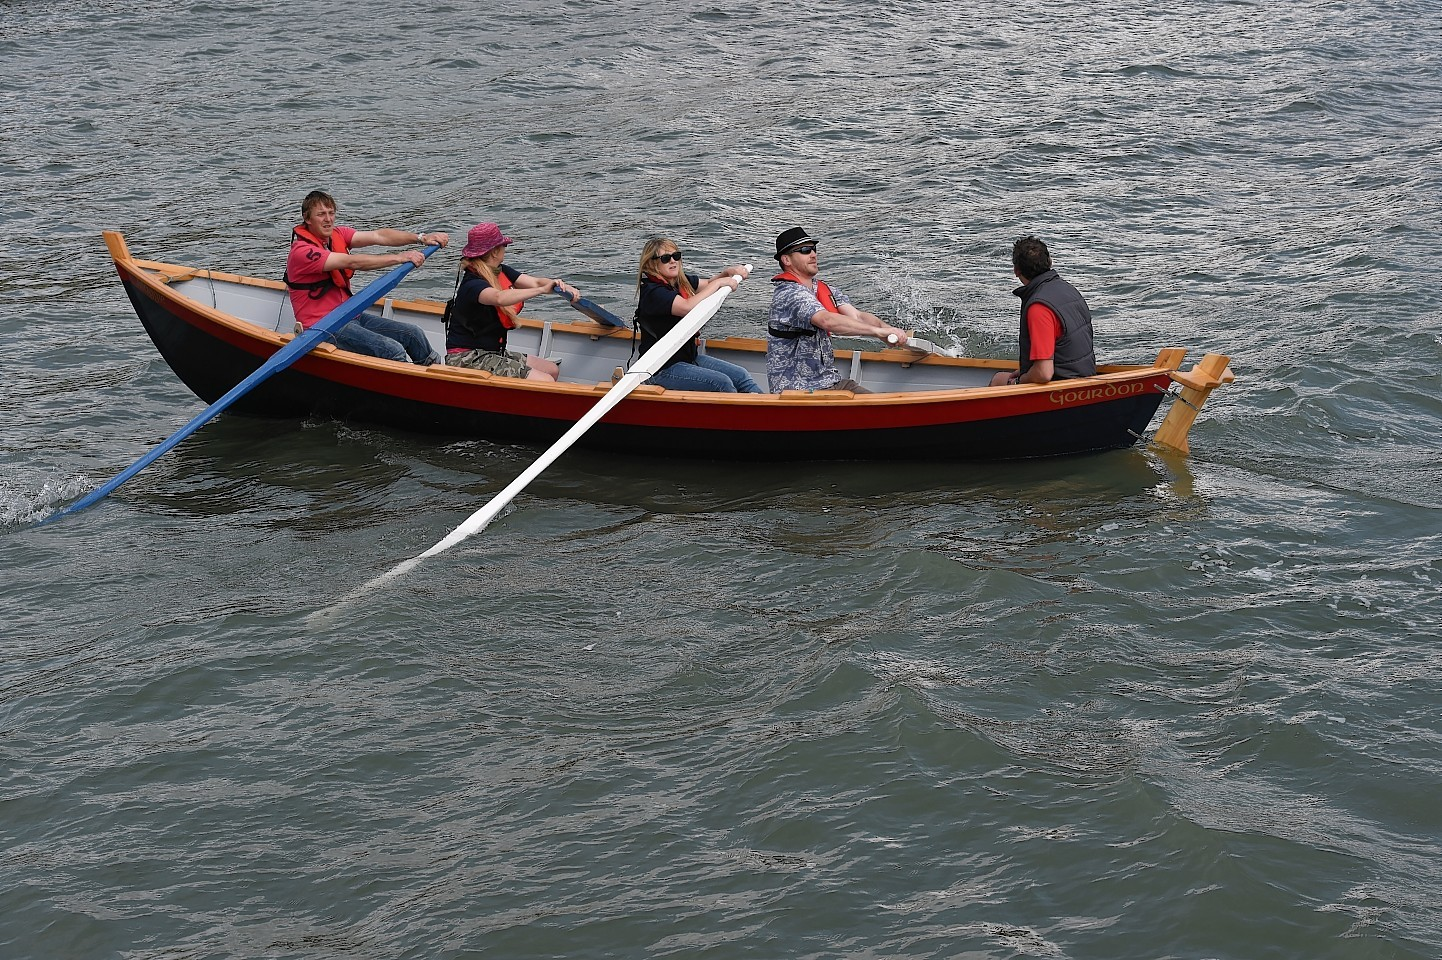 Gourdon Coastal Rowing Association has launched its skiff, Maggie